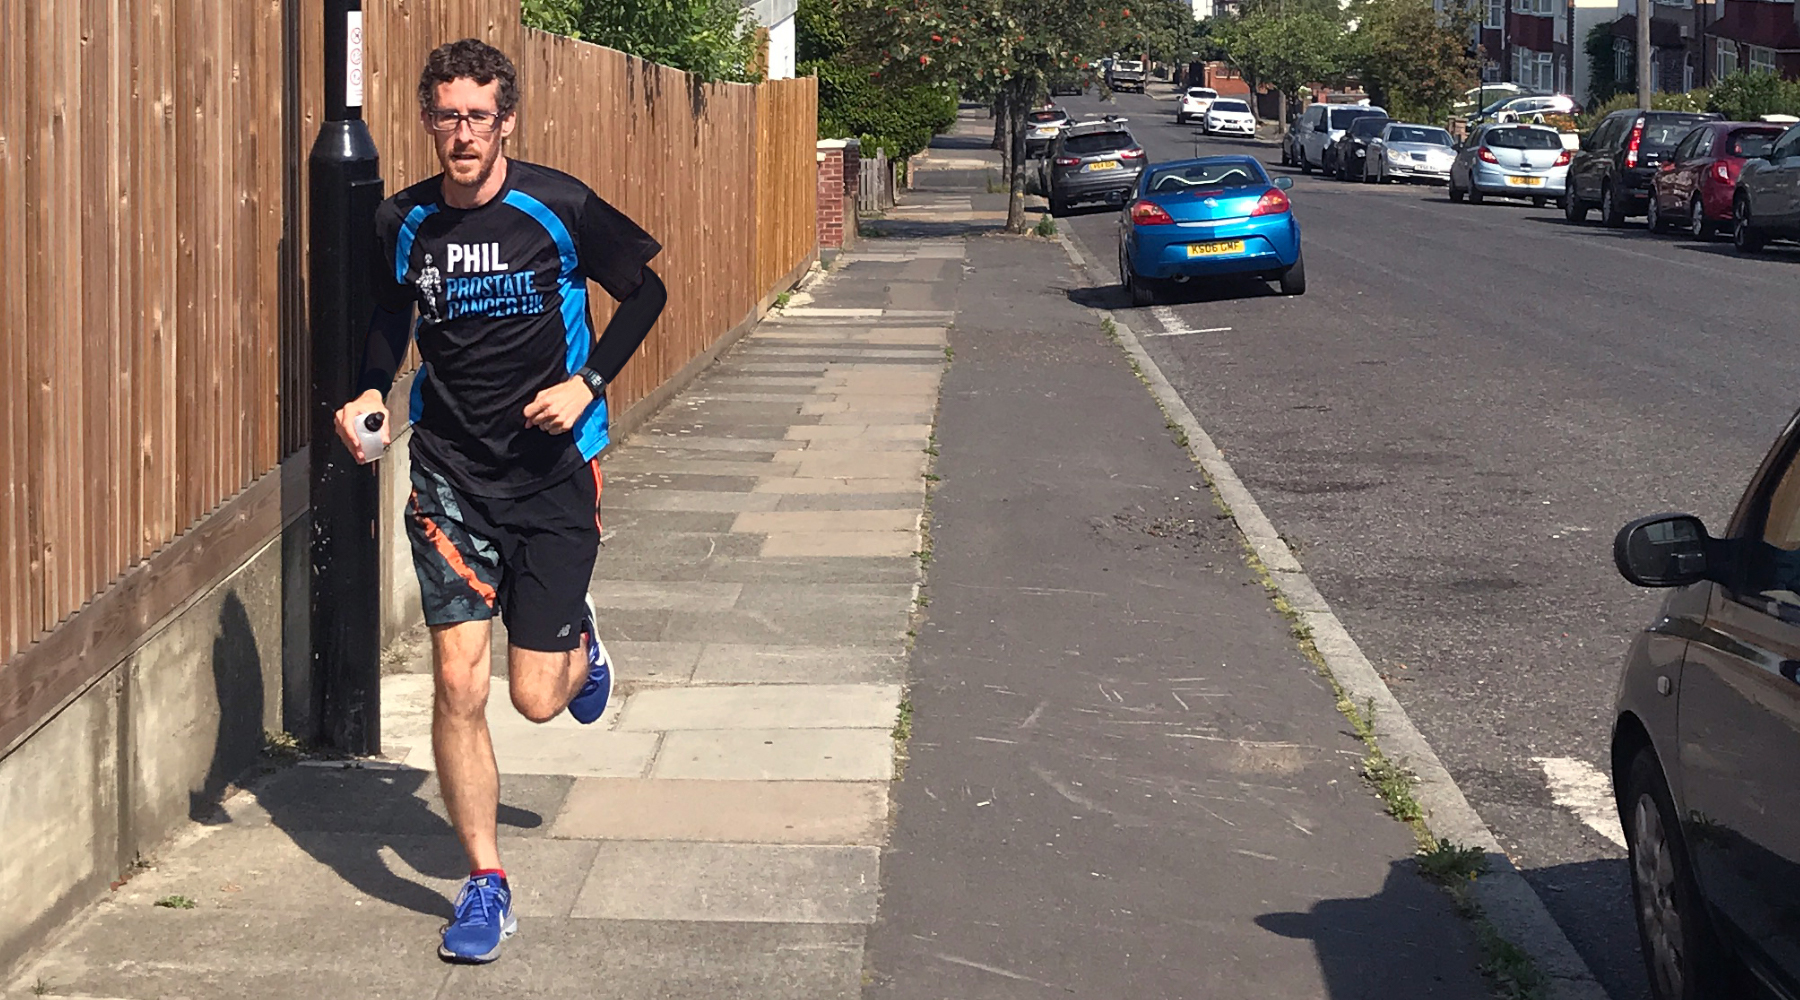 Man running along the street in a Prostate Cancer UK running top